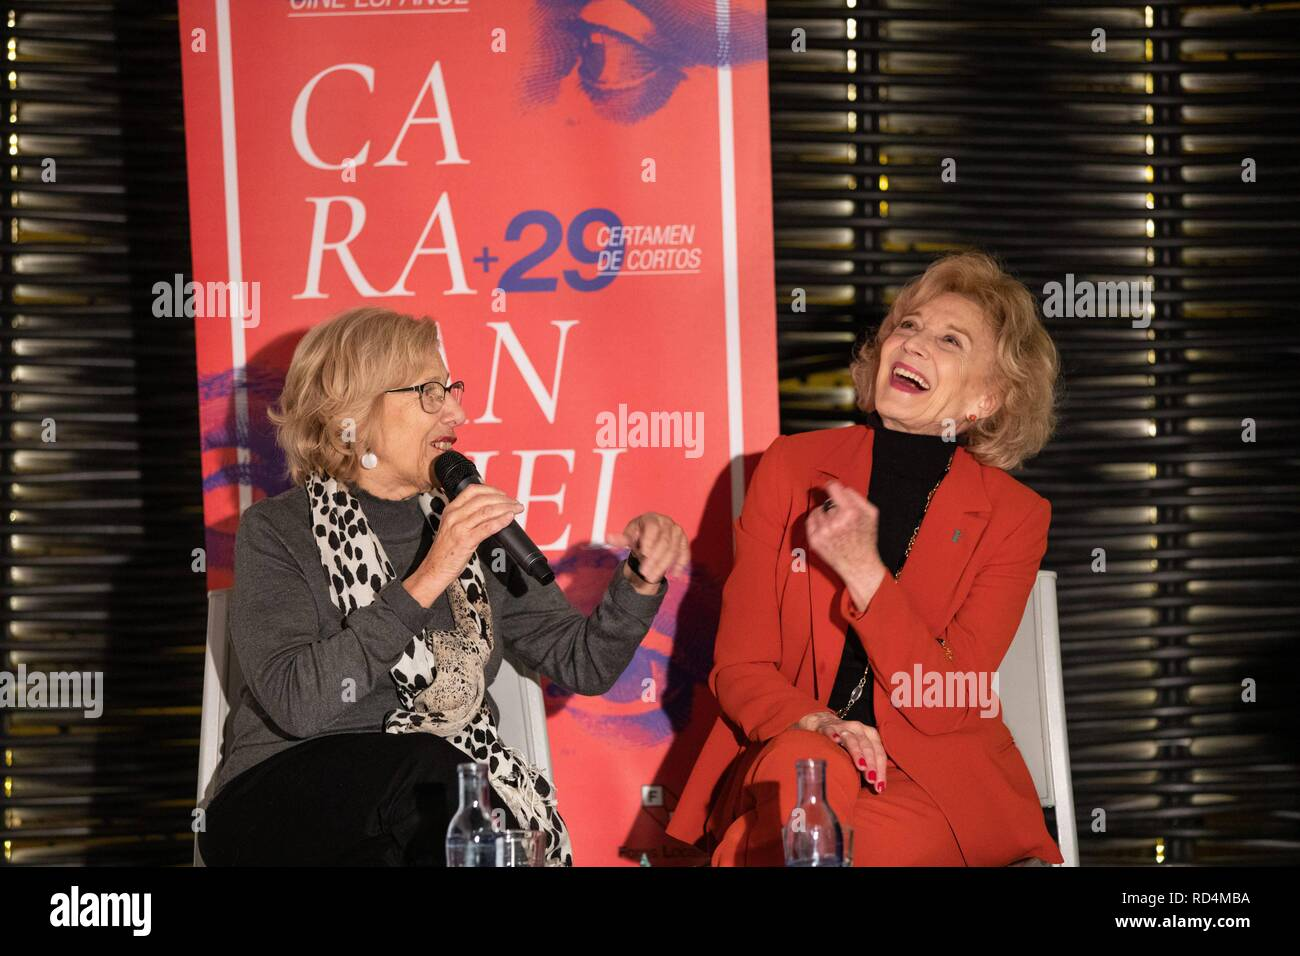 Manuela Carmena speaking with Marisa Paredes during the act. The Carabanchel Film Week has become one of the longest-running exhibitions in Madrid and has made it consolidate as the prelude to the Goya Awards.  Cordon Press - Stock Image